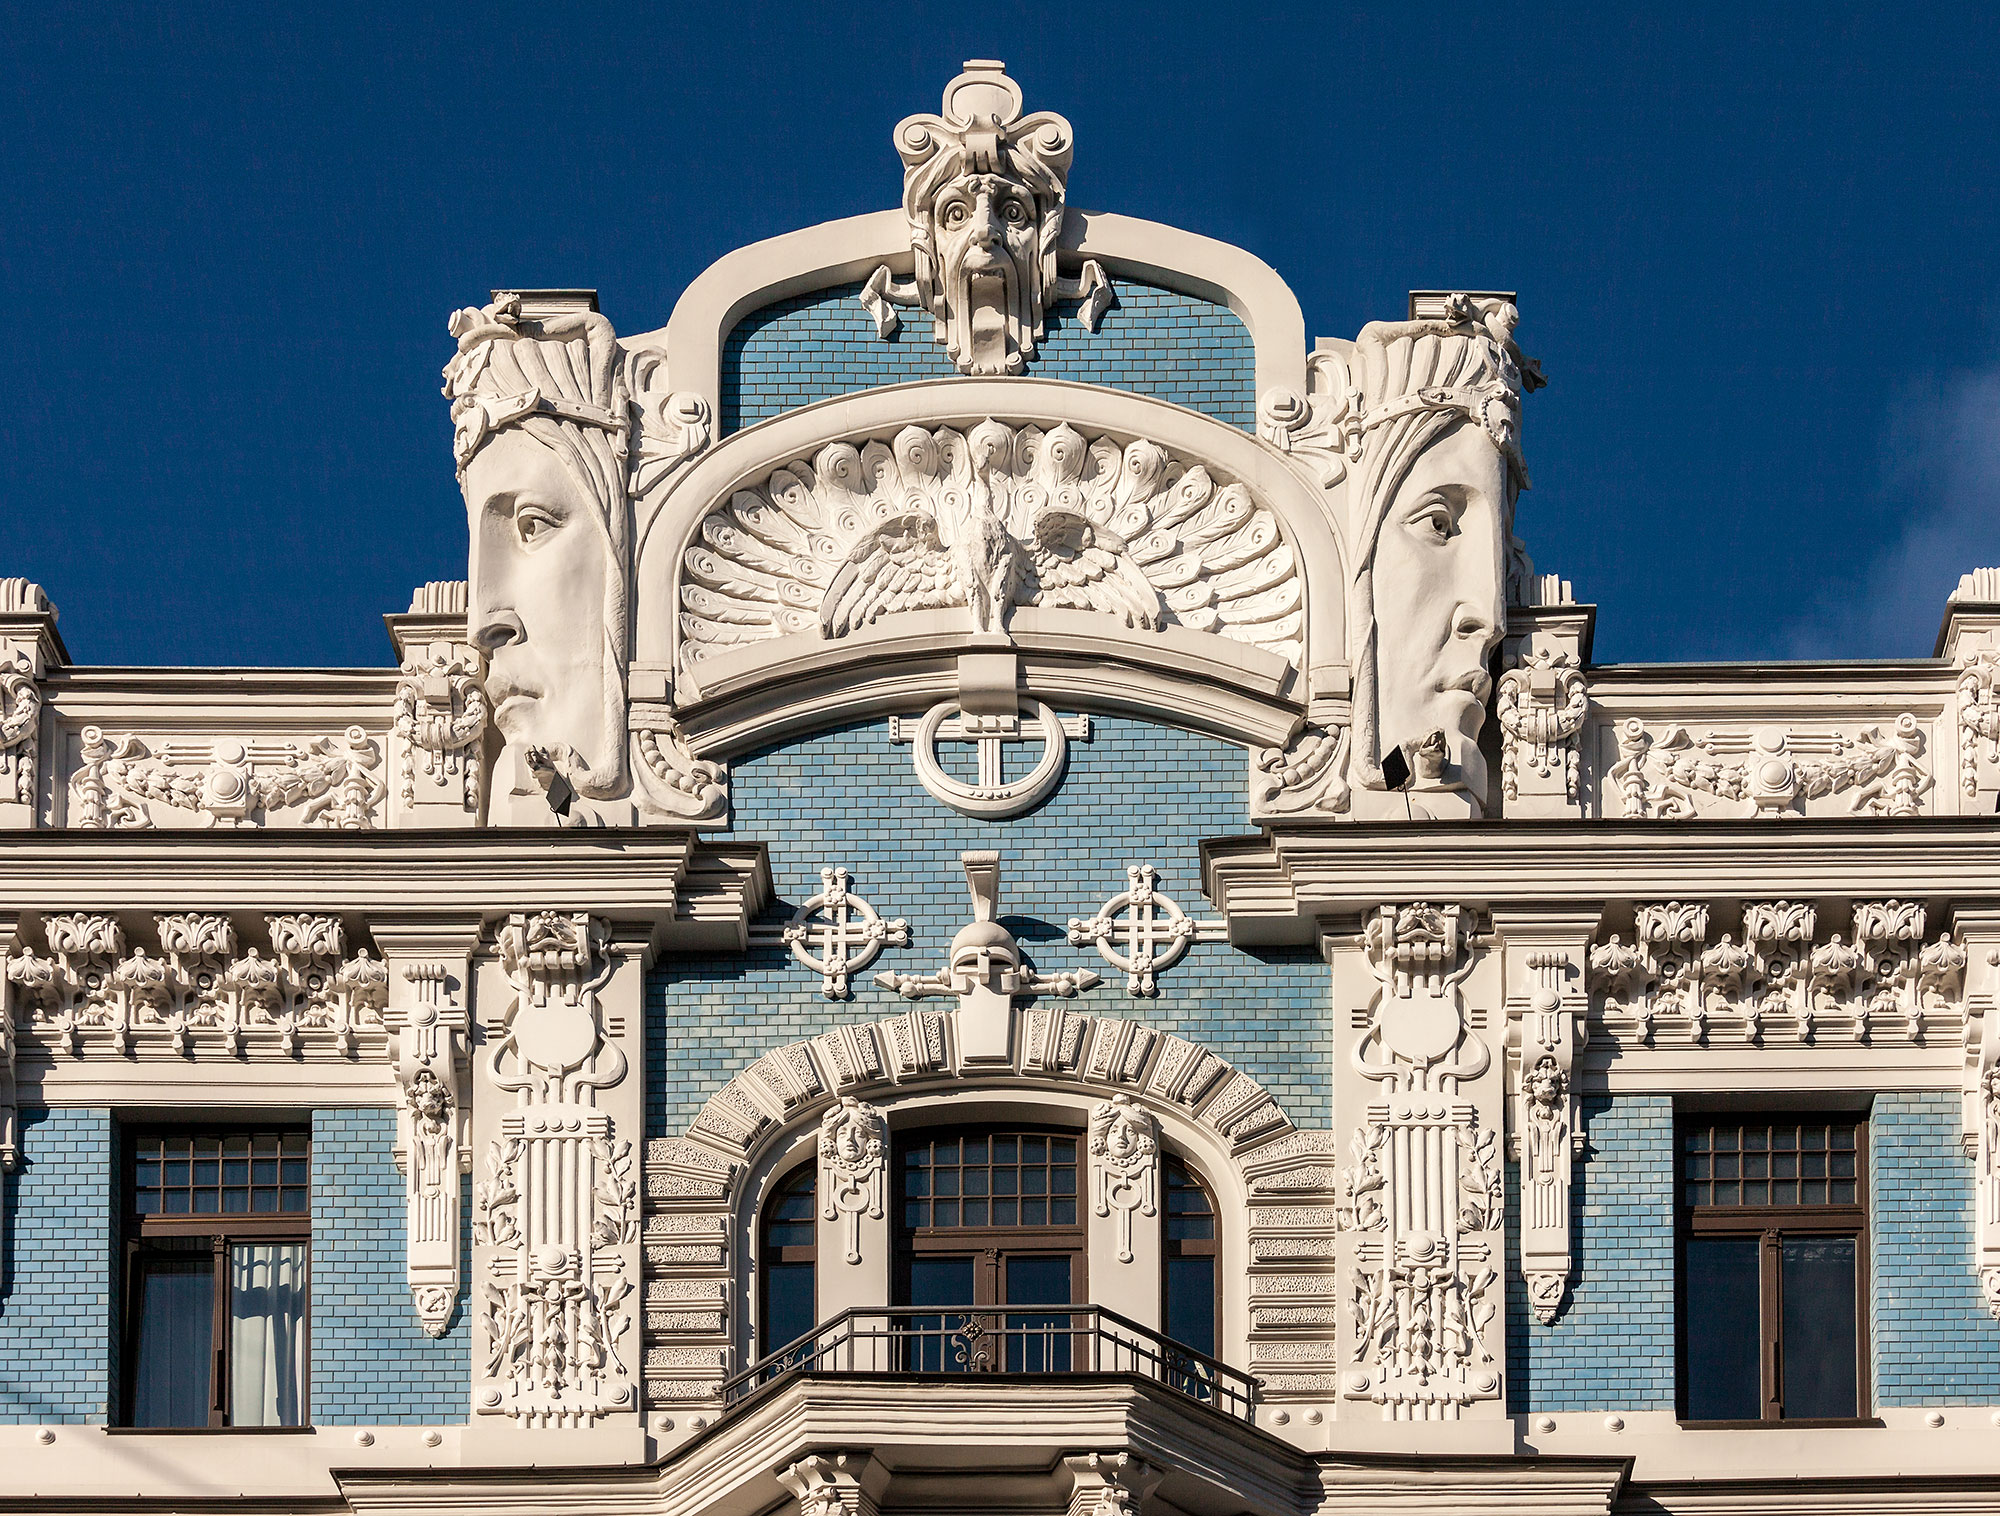 Riga Art Nouveau Architecture - Things to do in Riga